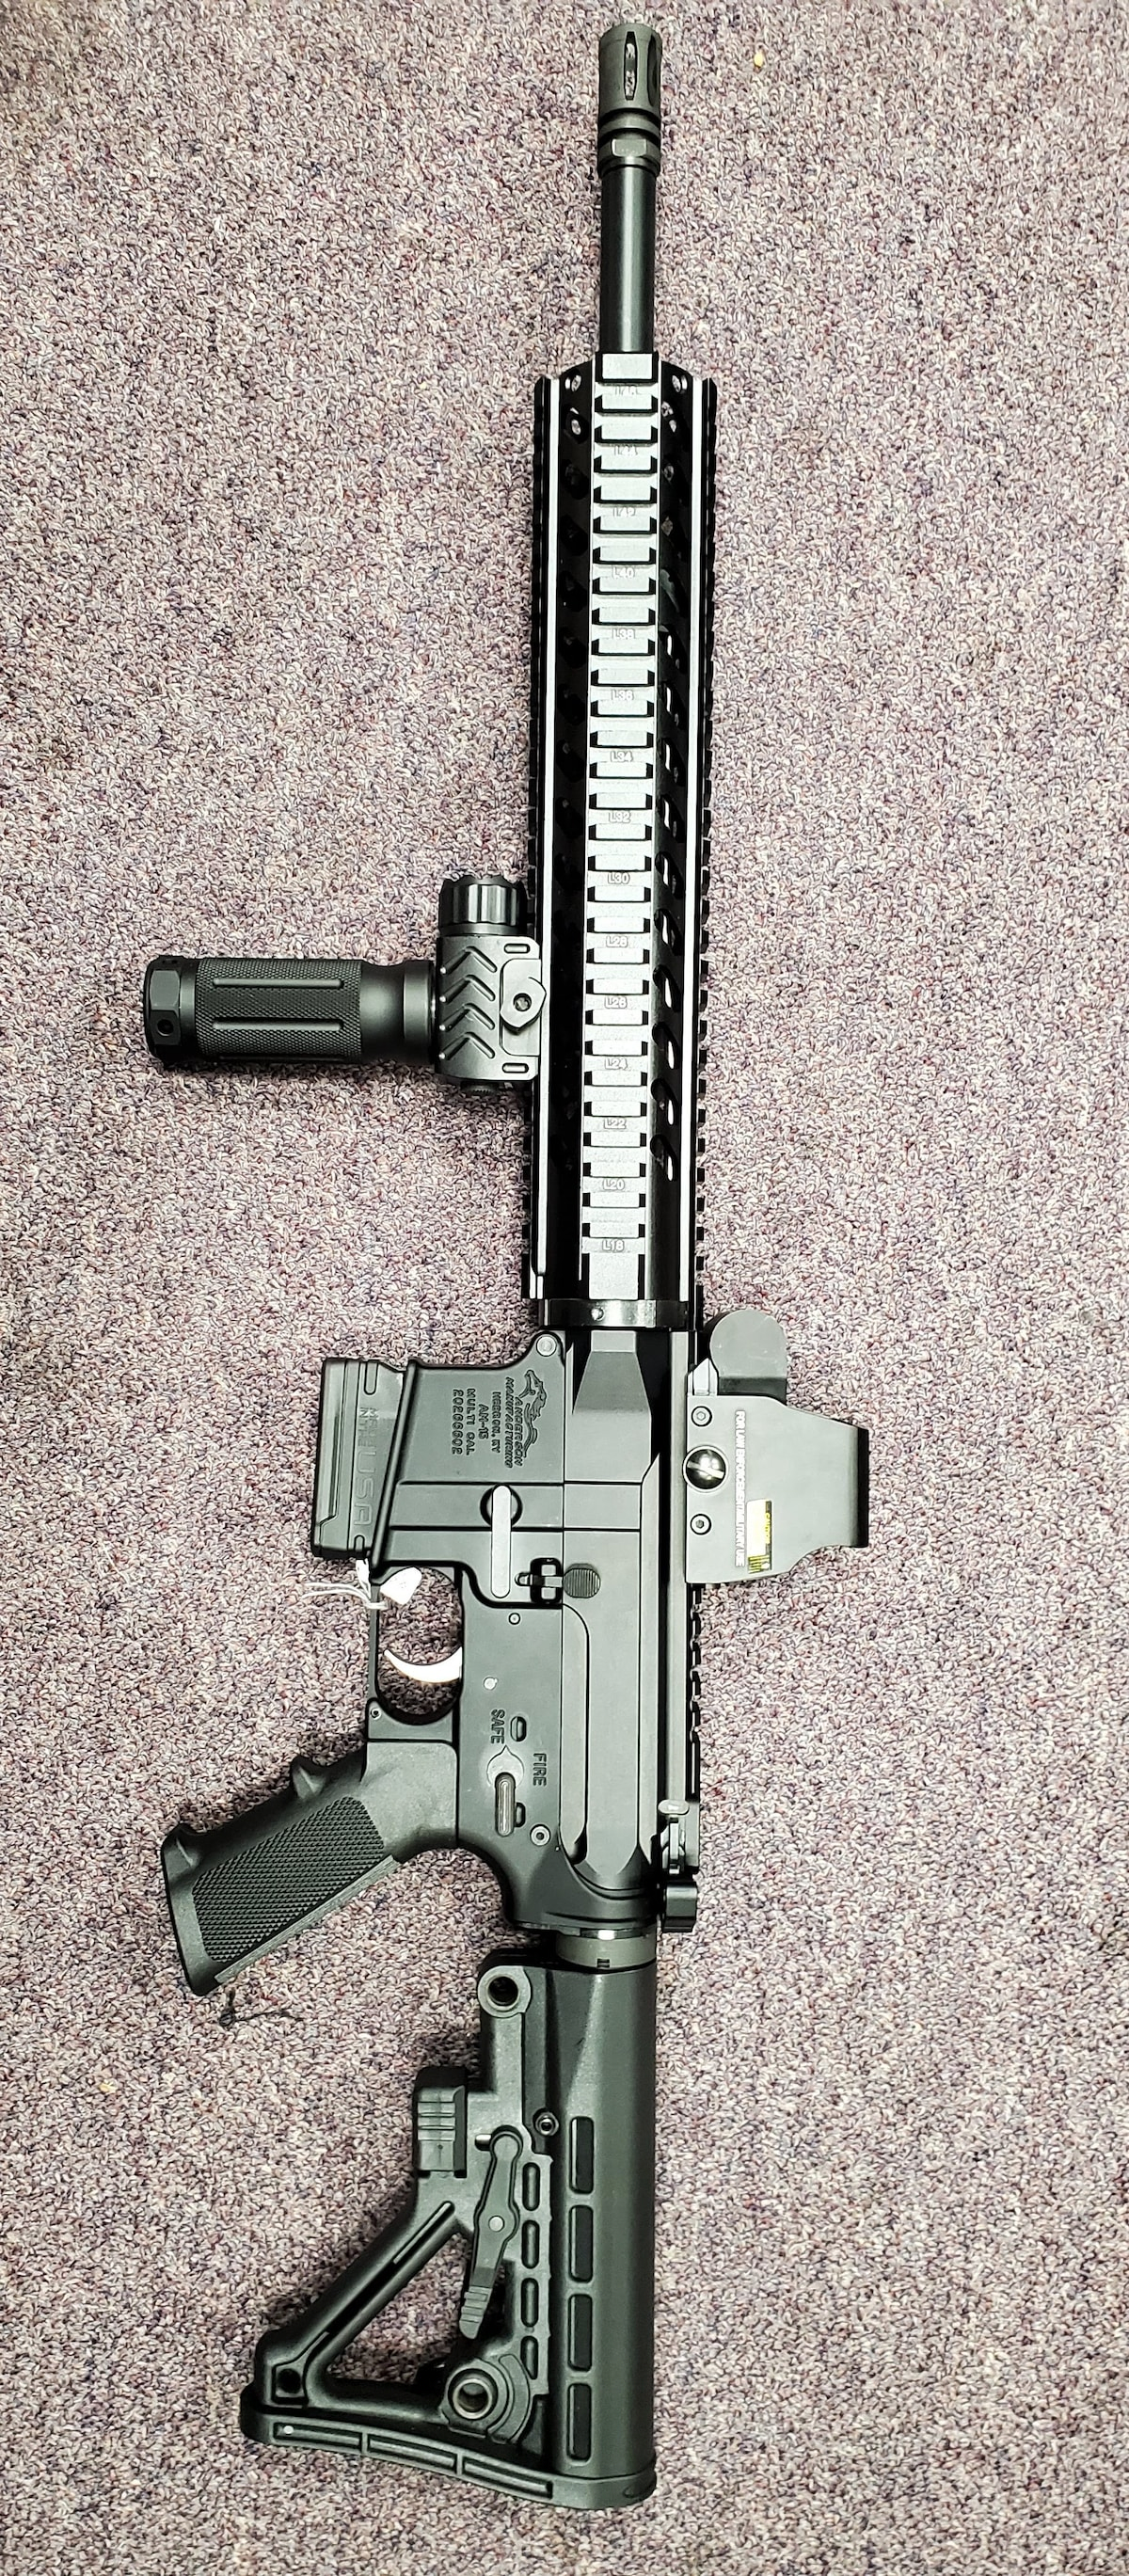 ANDERSON MANUFACTURING fixed magazine m4 ar15 am15 with red dot sight & flashlight grip